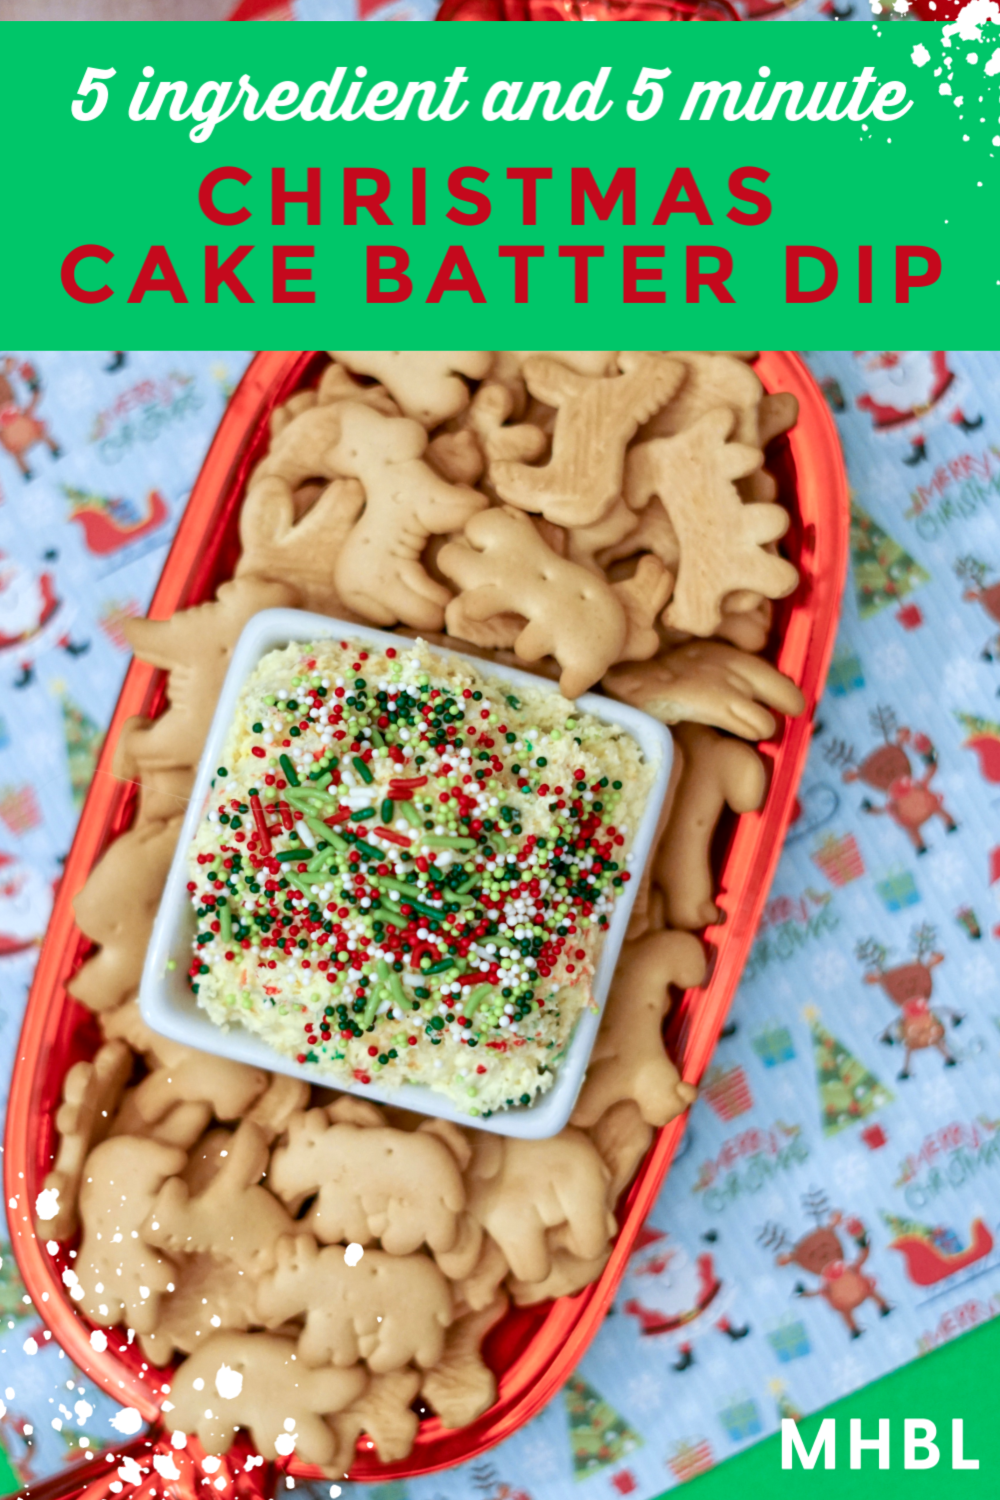 Christmas cake batter dip - an easy holiday dessert with 5 ingredients that take 5 minutes to make